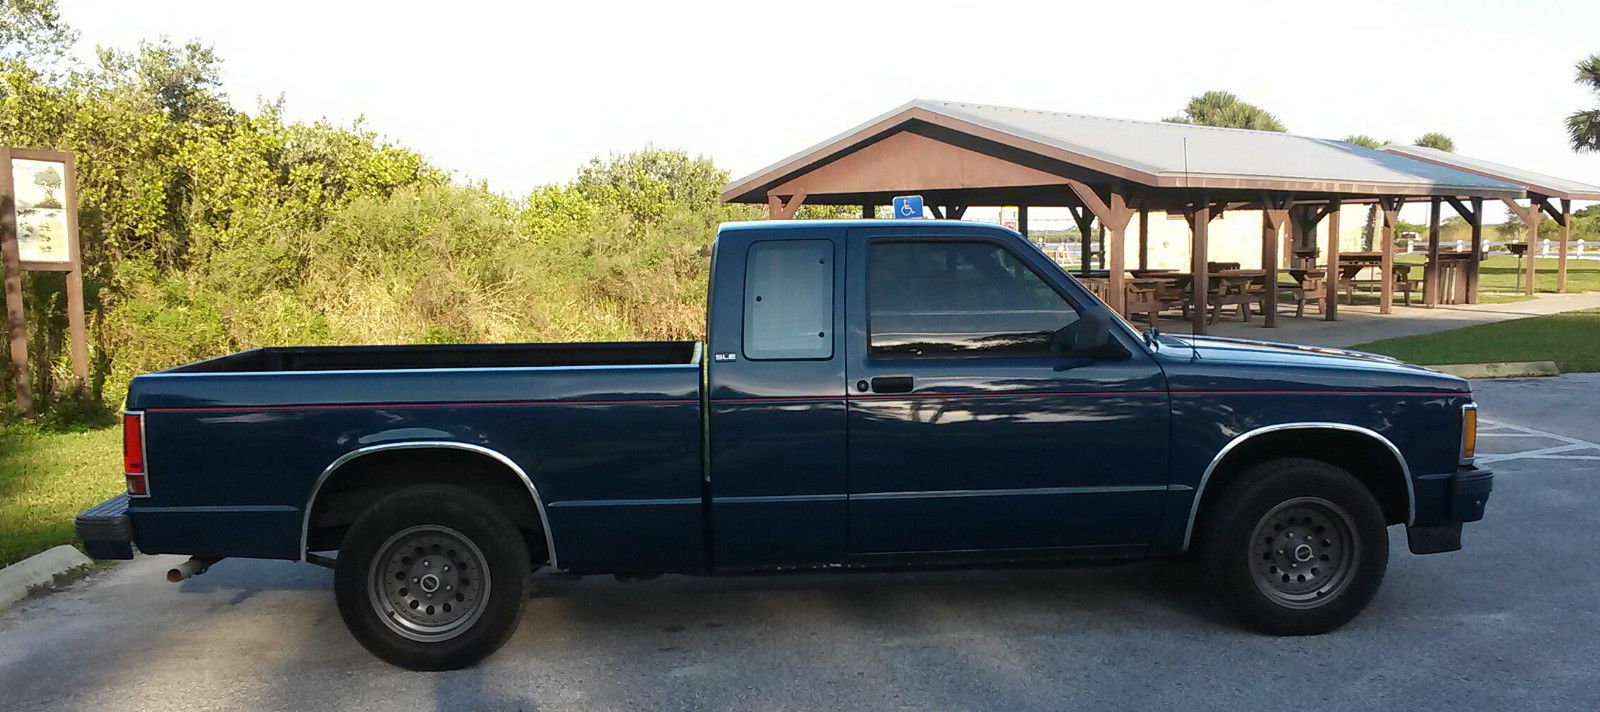 Rust Free 1991 Gmc Sonoma Sle Extended Cab Excellent Original Stock Truck Classic Chevrolet S 10 1991 For Sale